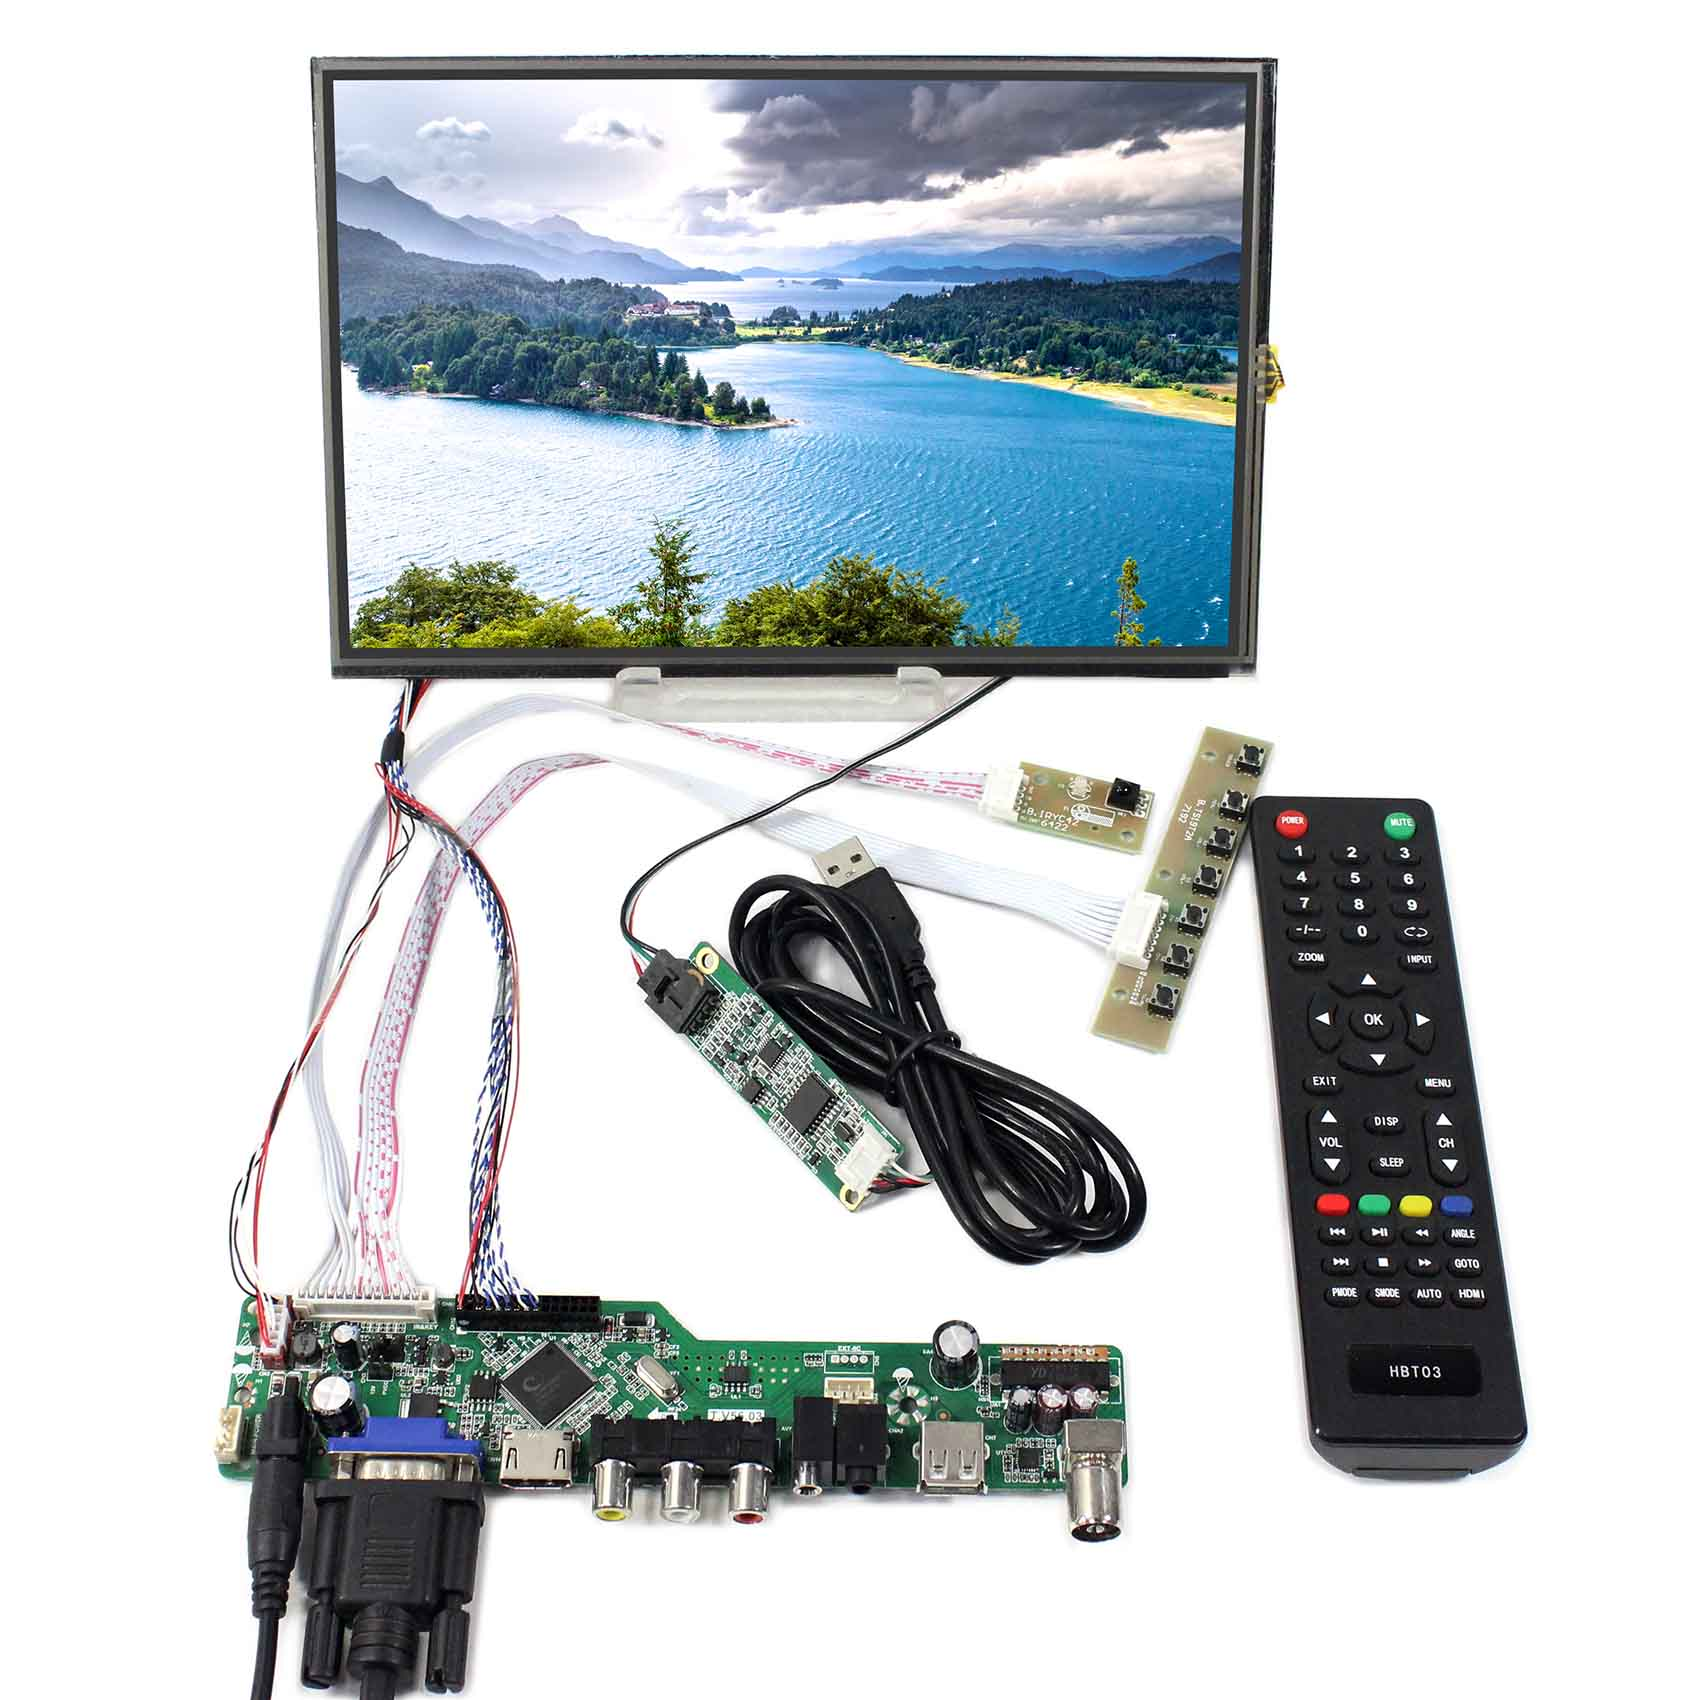 10.1inch M101NWWB 1280X800 LCD Screen With Resistive Touch Panel  and HDMI VGA AV USB RF LCD Controller Board|Replacement Parts & Accessories| |  - title=